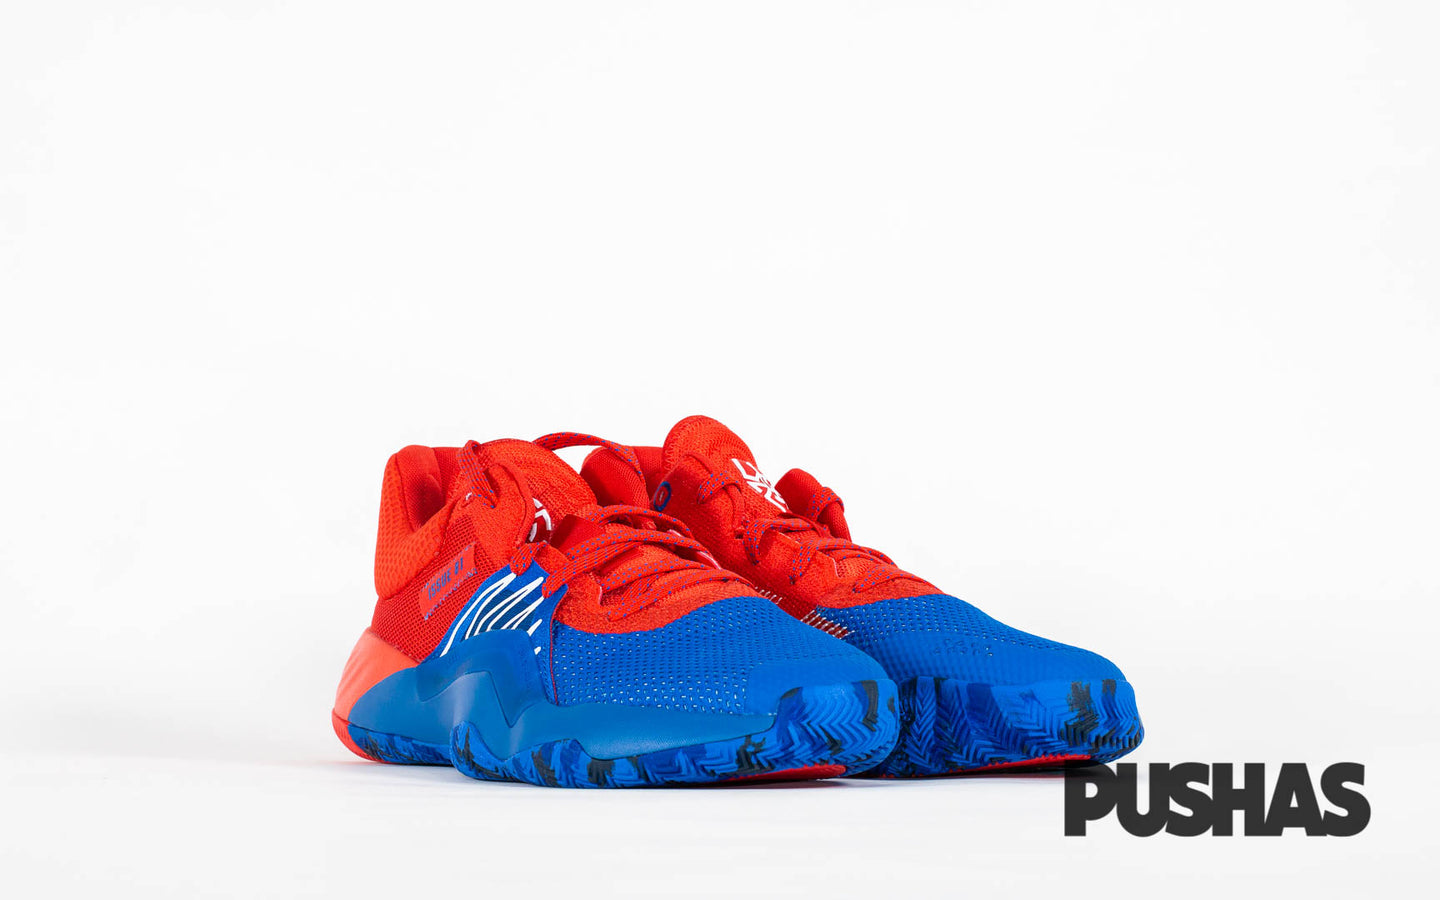 pushas-adidas-D.O.N.-Issue-#1-Amazing-Spider-Man